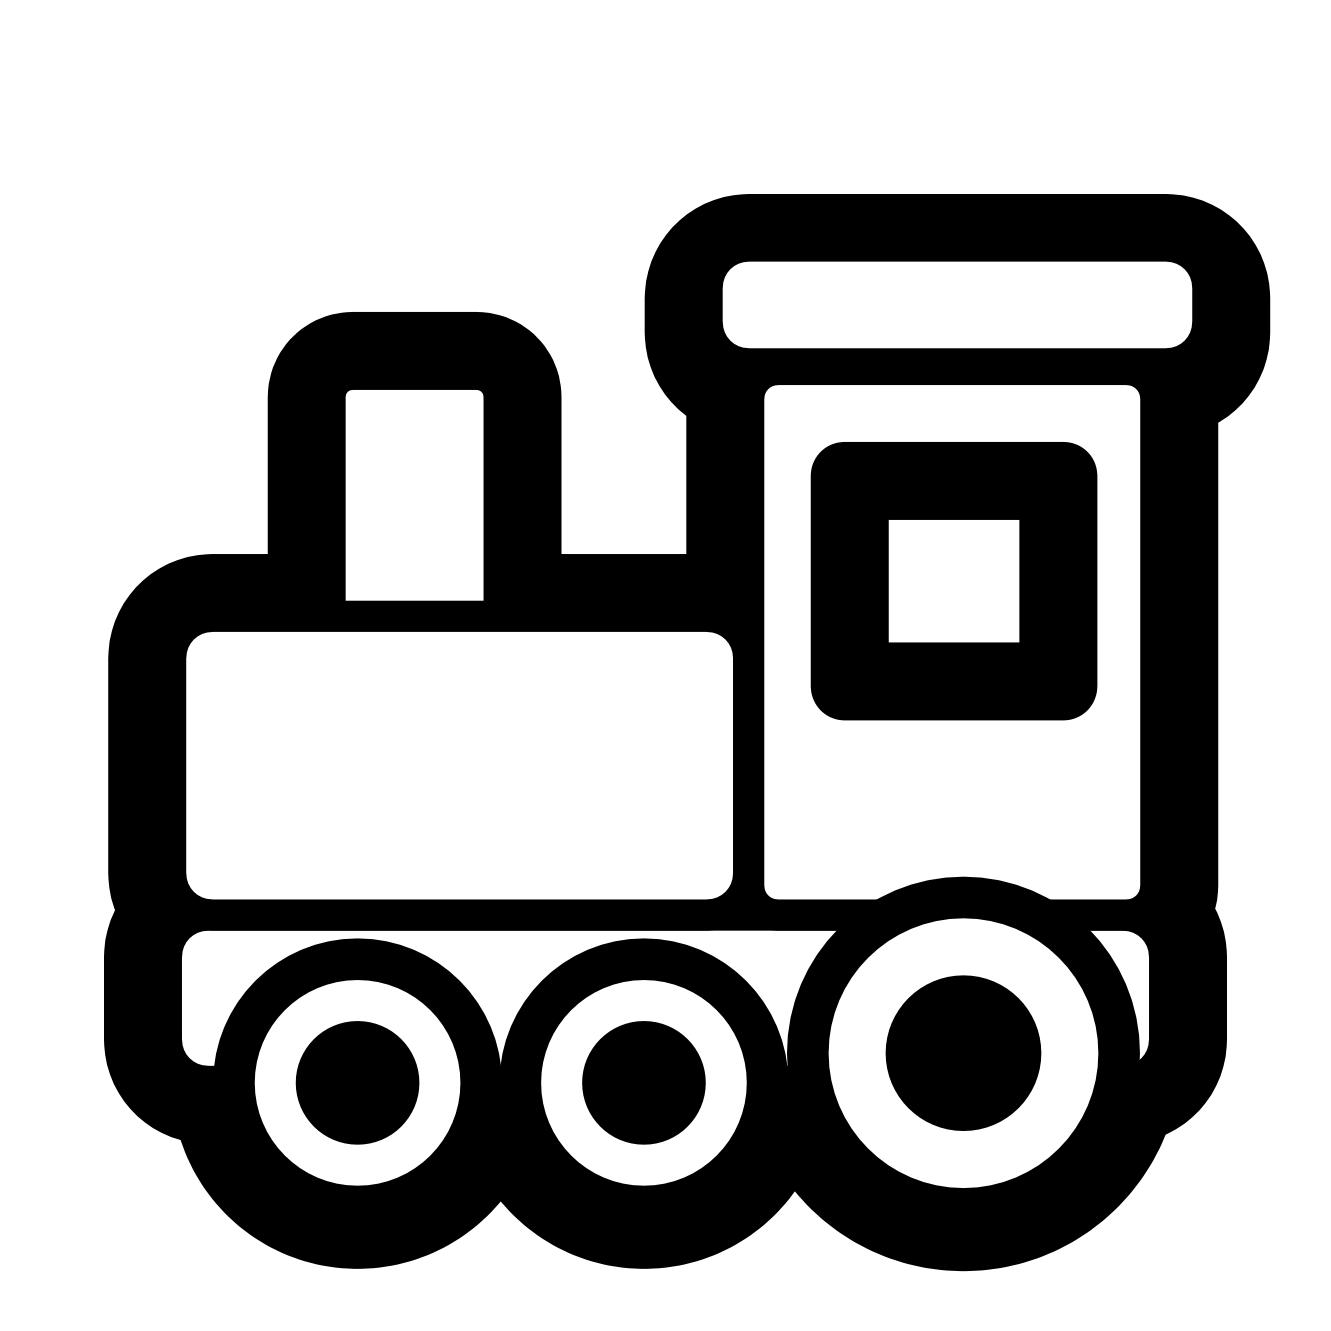 Images For Gt Train On Tracks Clipart Train Clipart Clipart Black And White Train Illustration